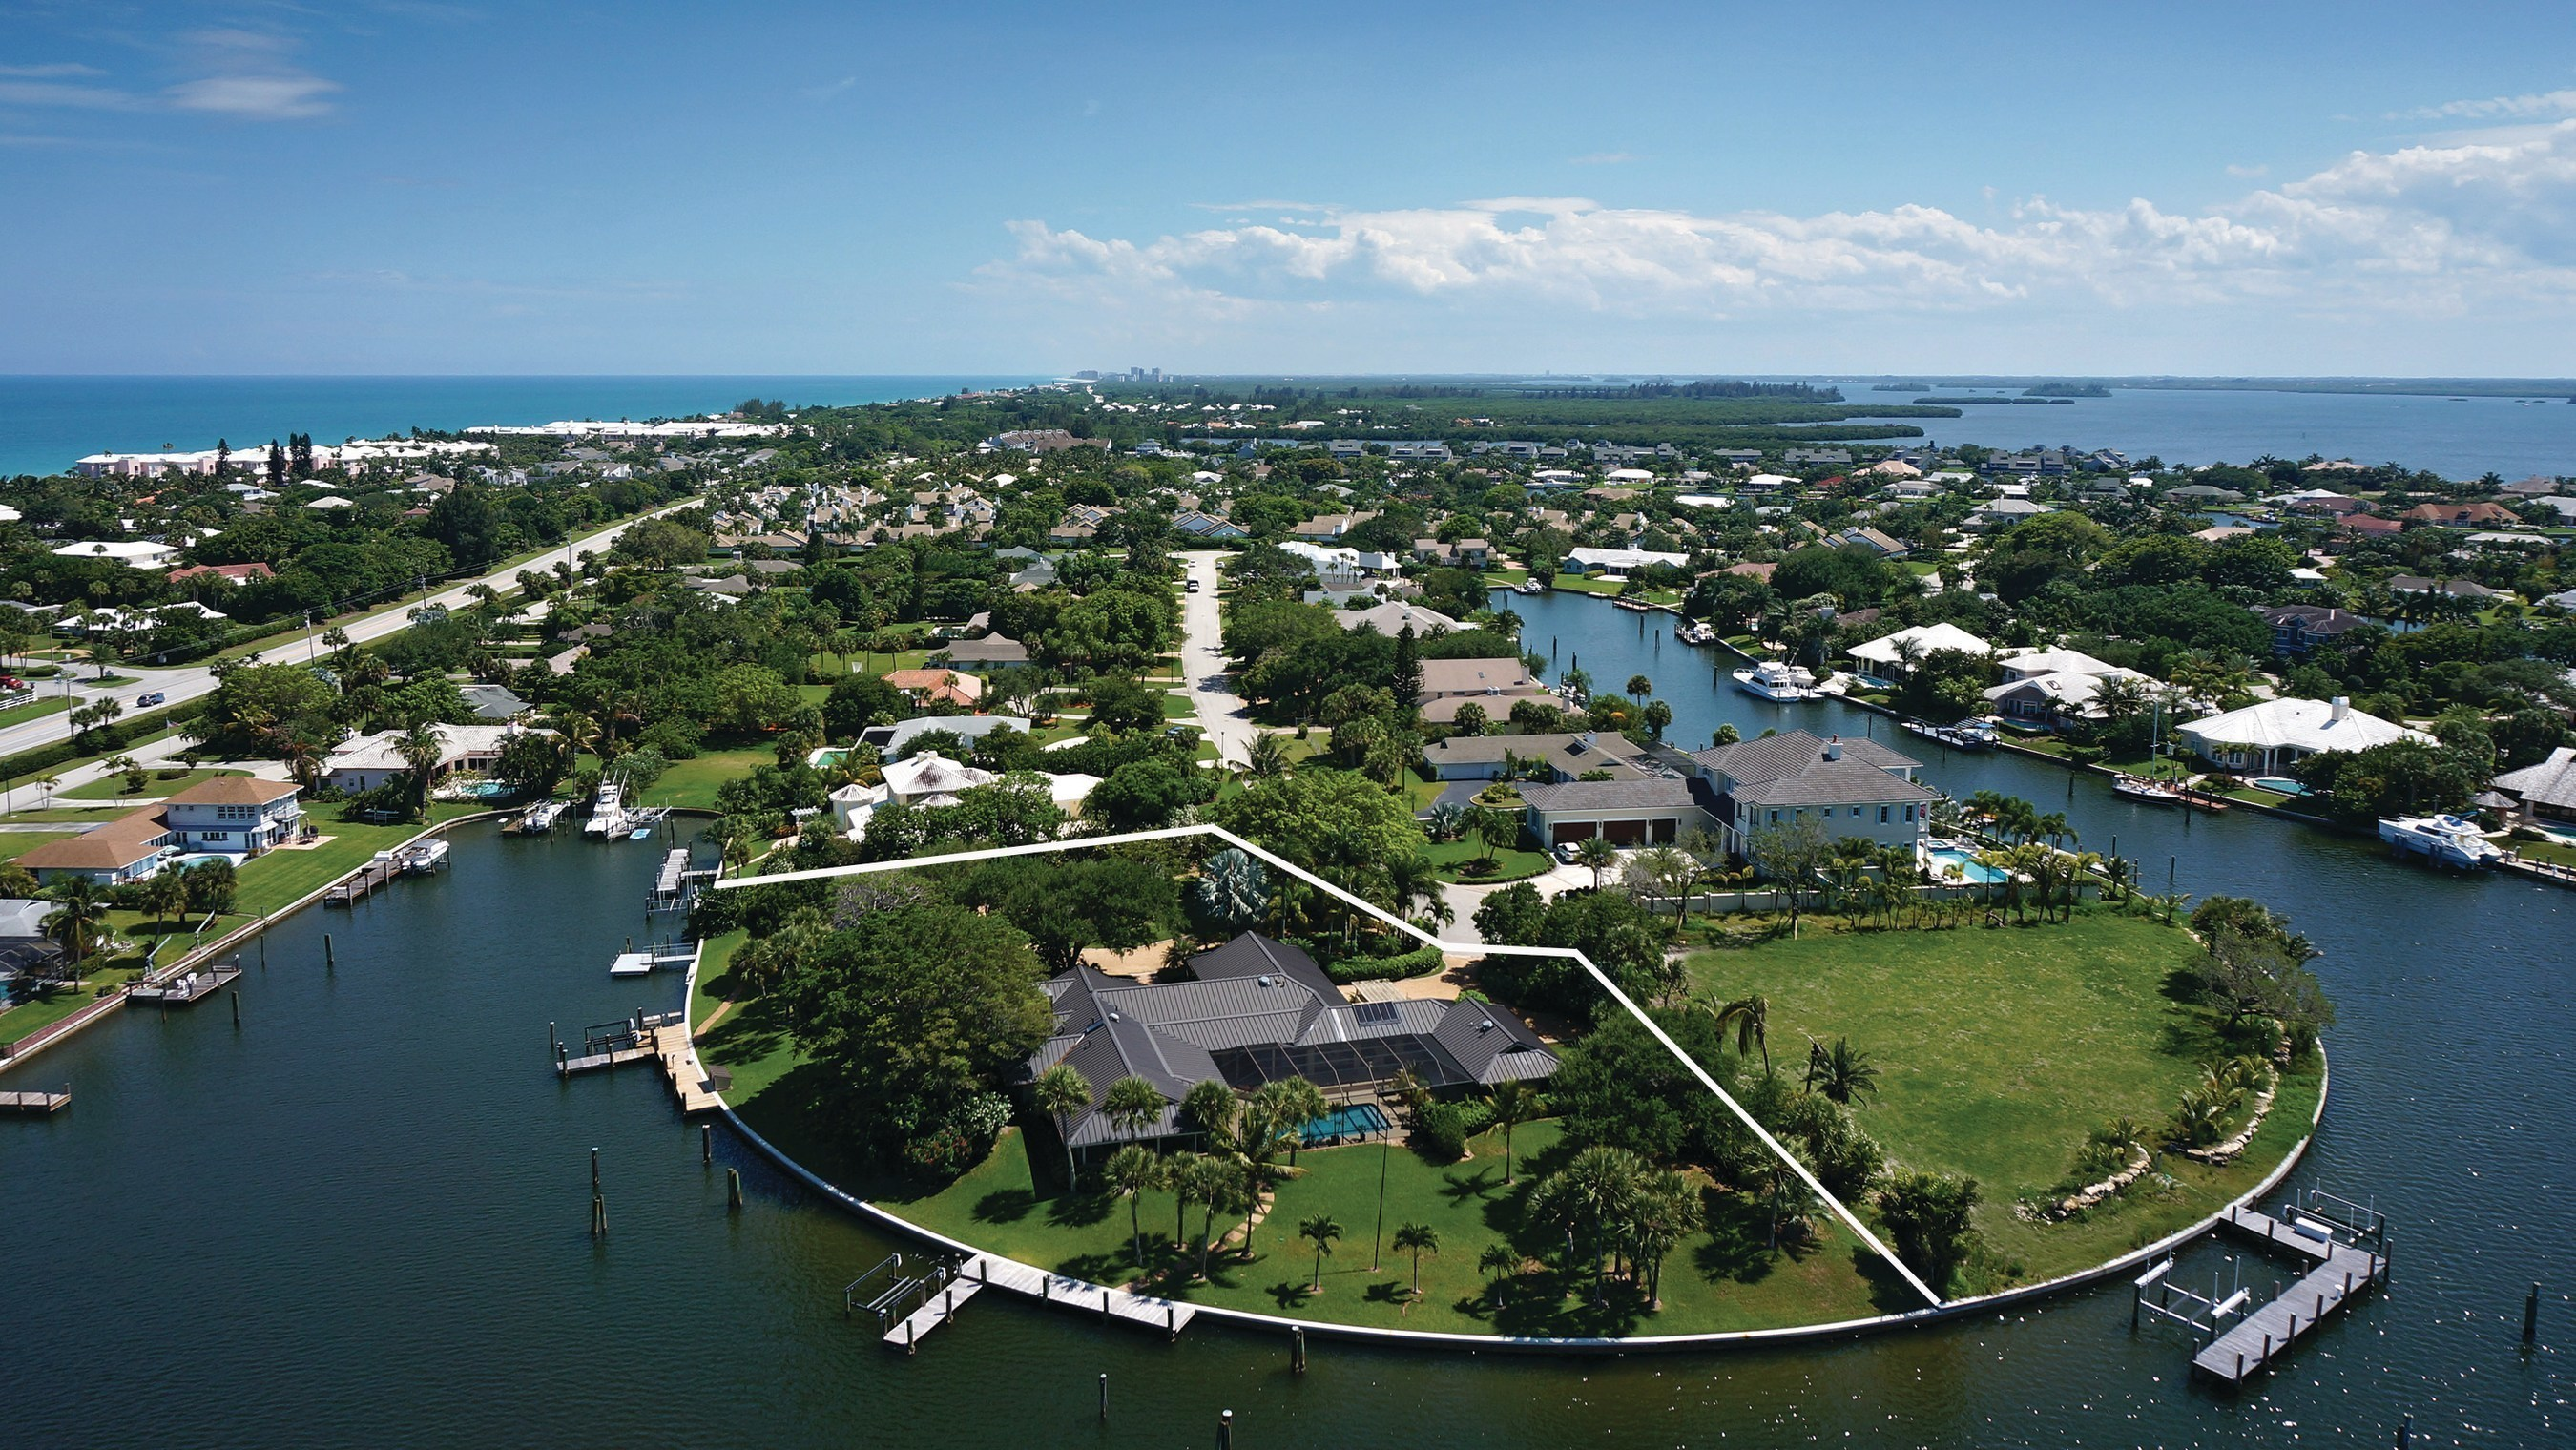 Point Lot Waterfront Estate in Vero Beach, Florida Heads To Luxury Auction